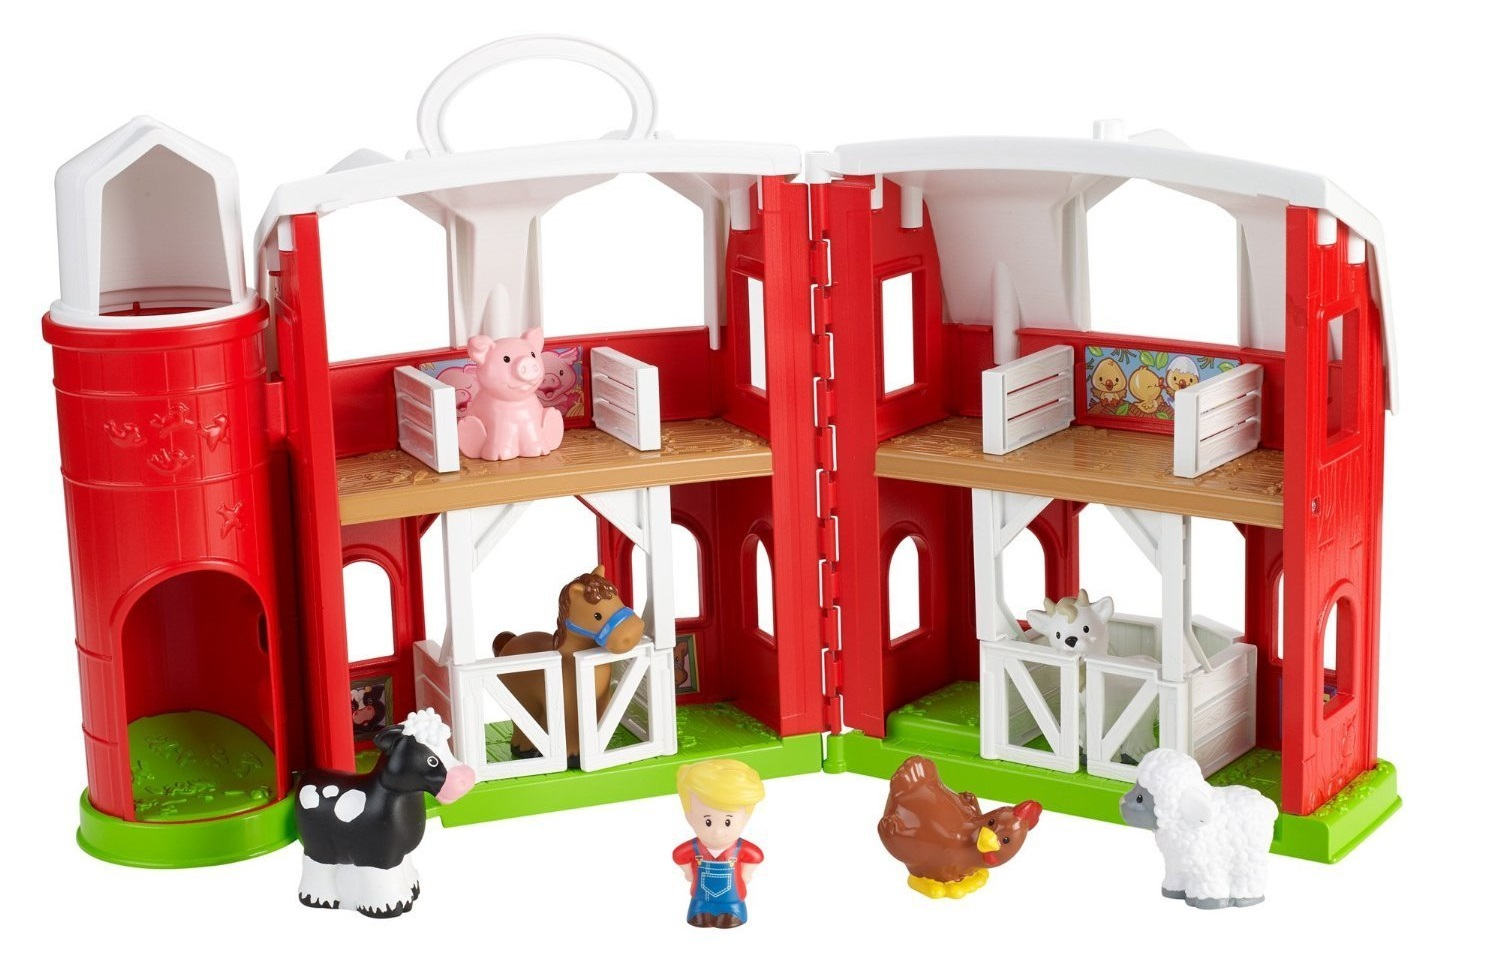 Toy Farm Sets With Animals - 3 Sets To Choose From